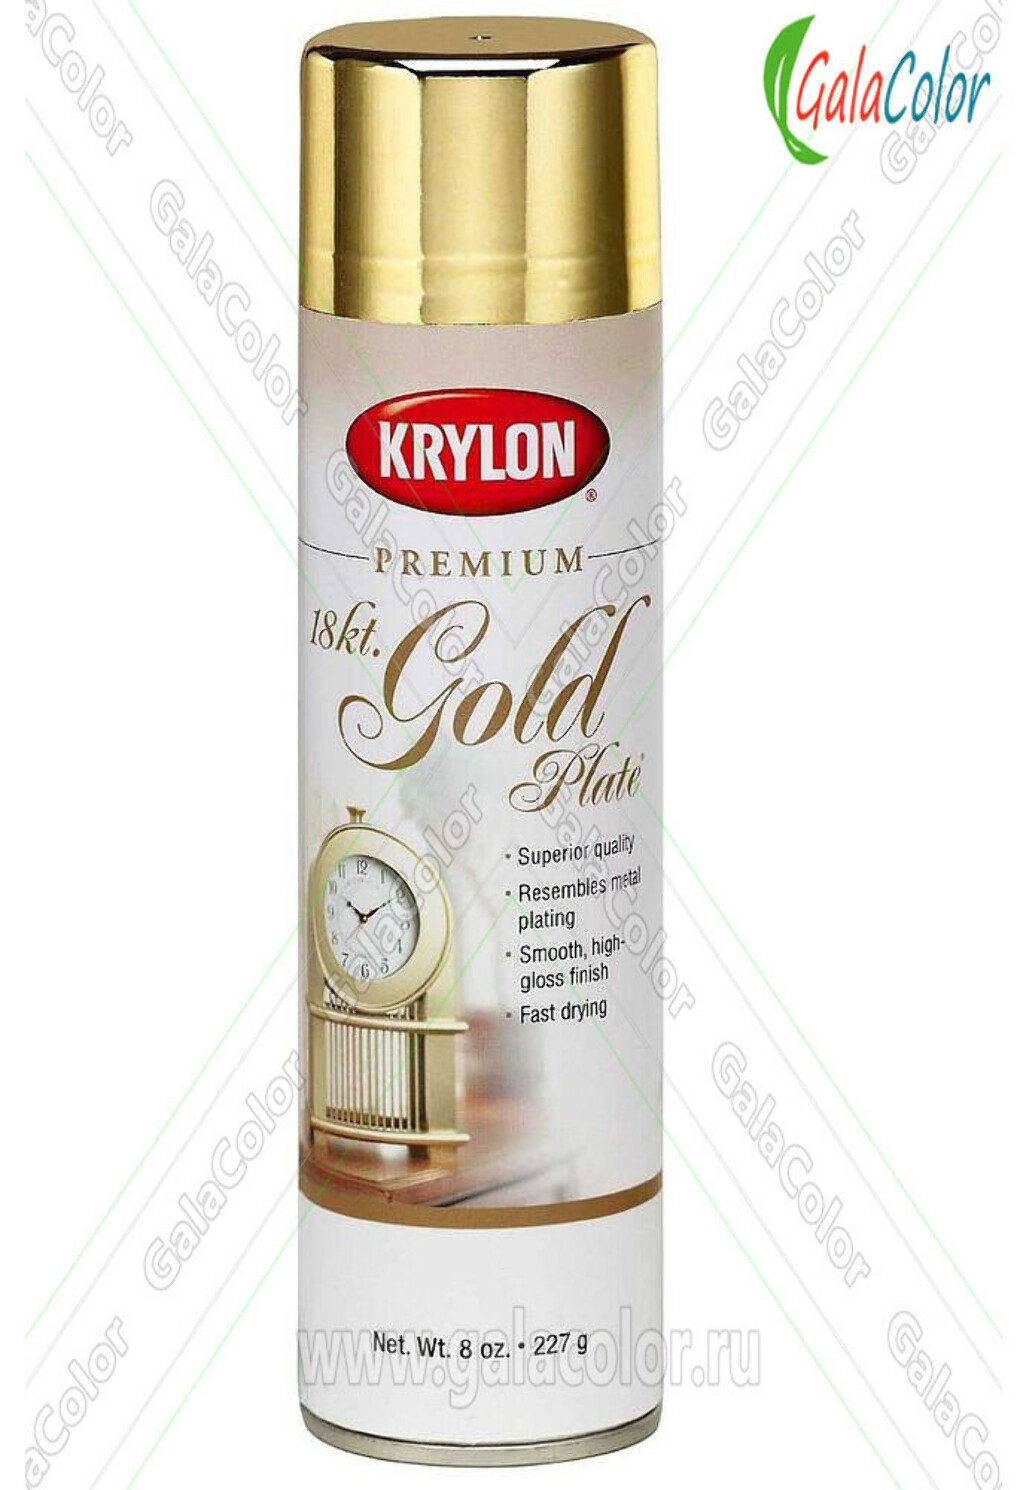 Krylon Premium Mirrored Metalic Gold